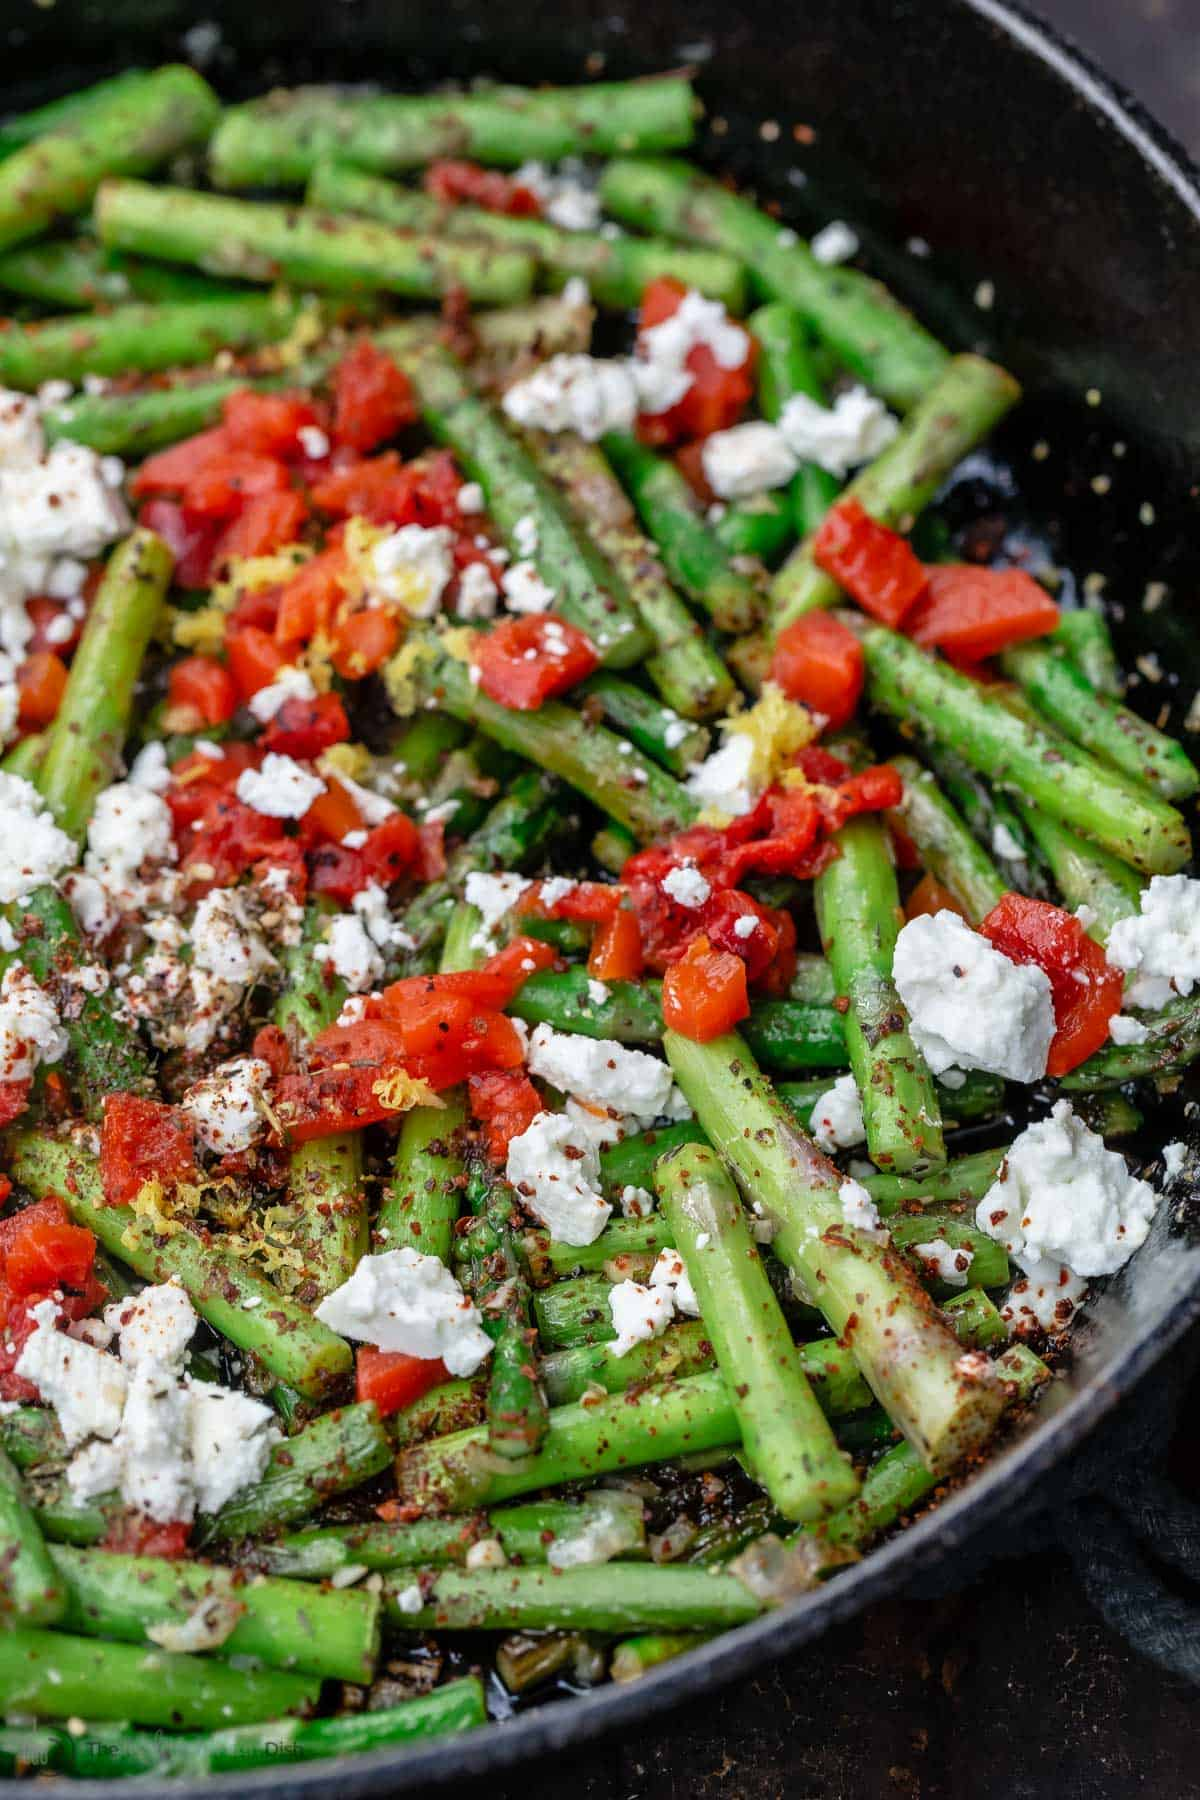 lemon garlic asparagus topped with feta and roasted red peppers